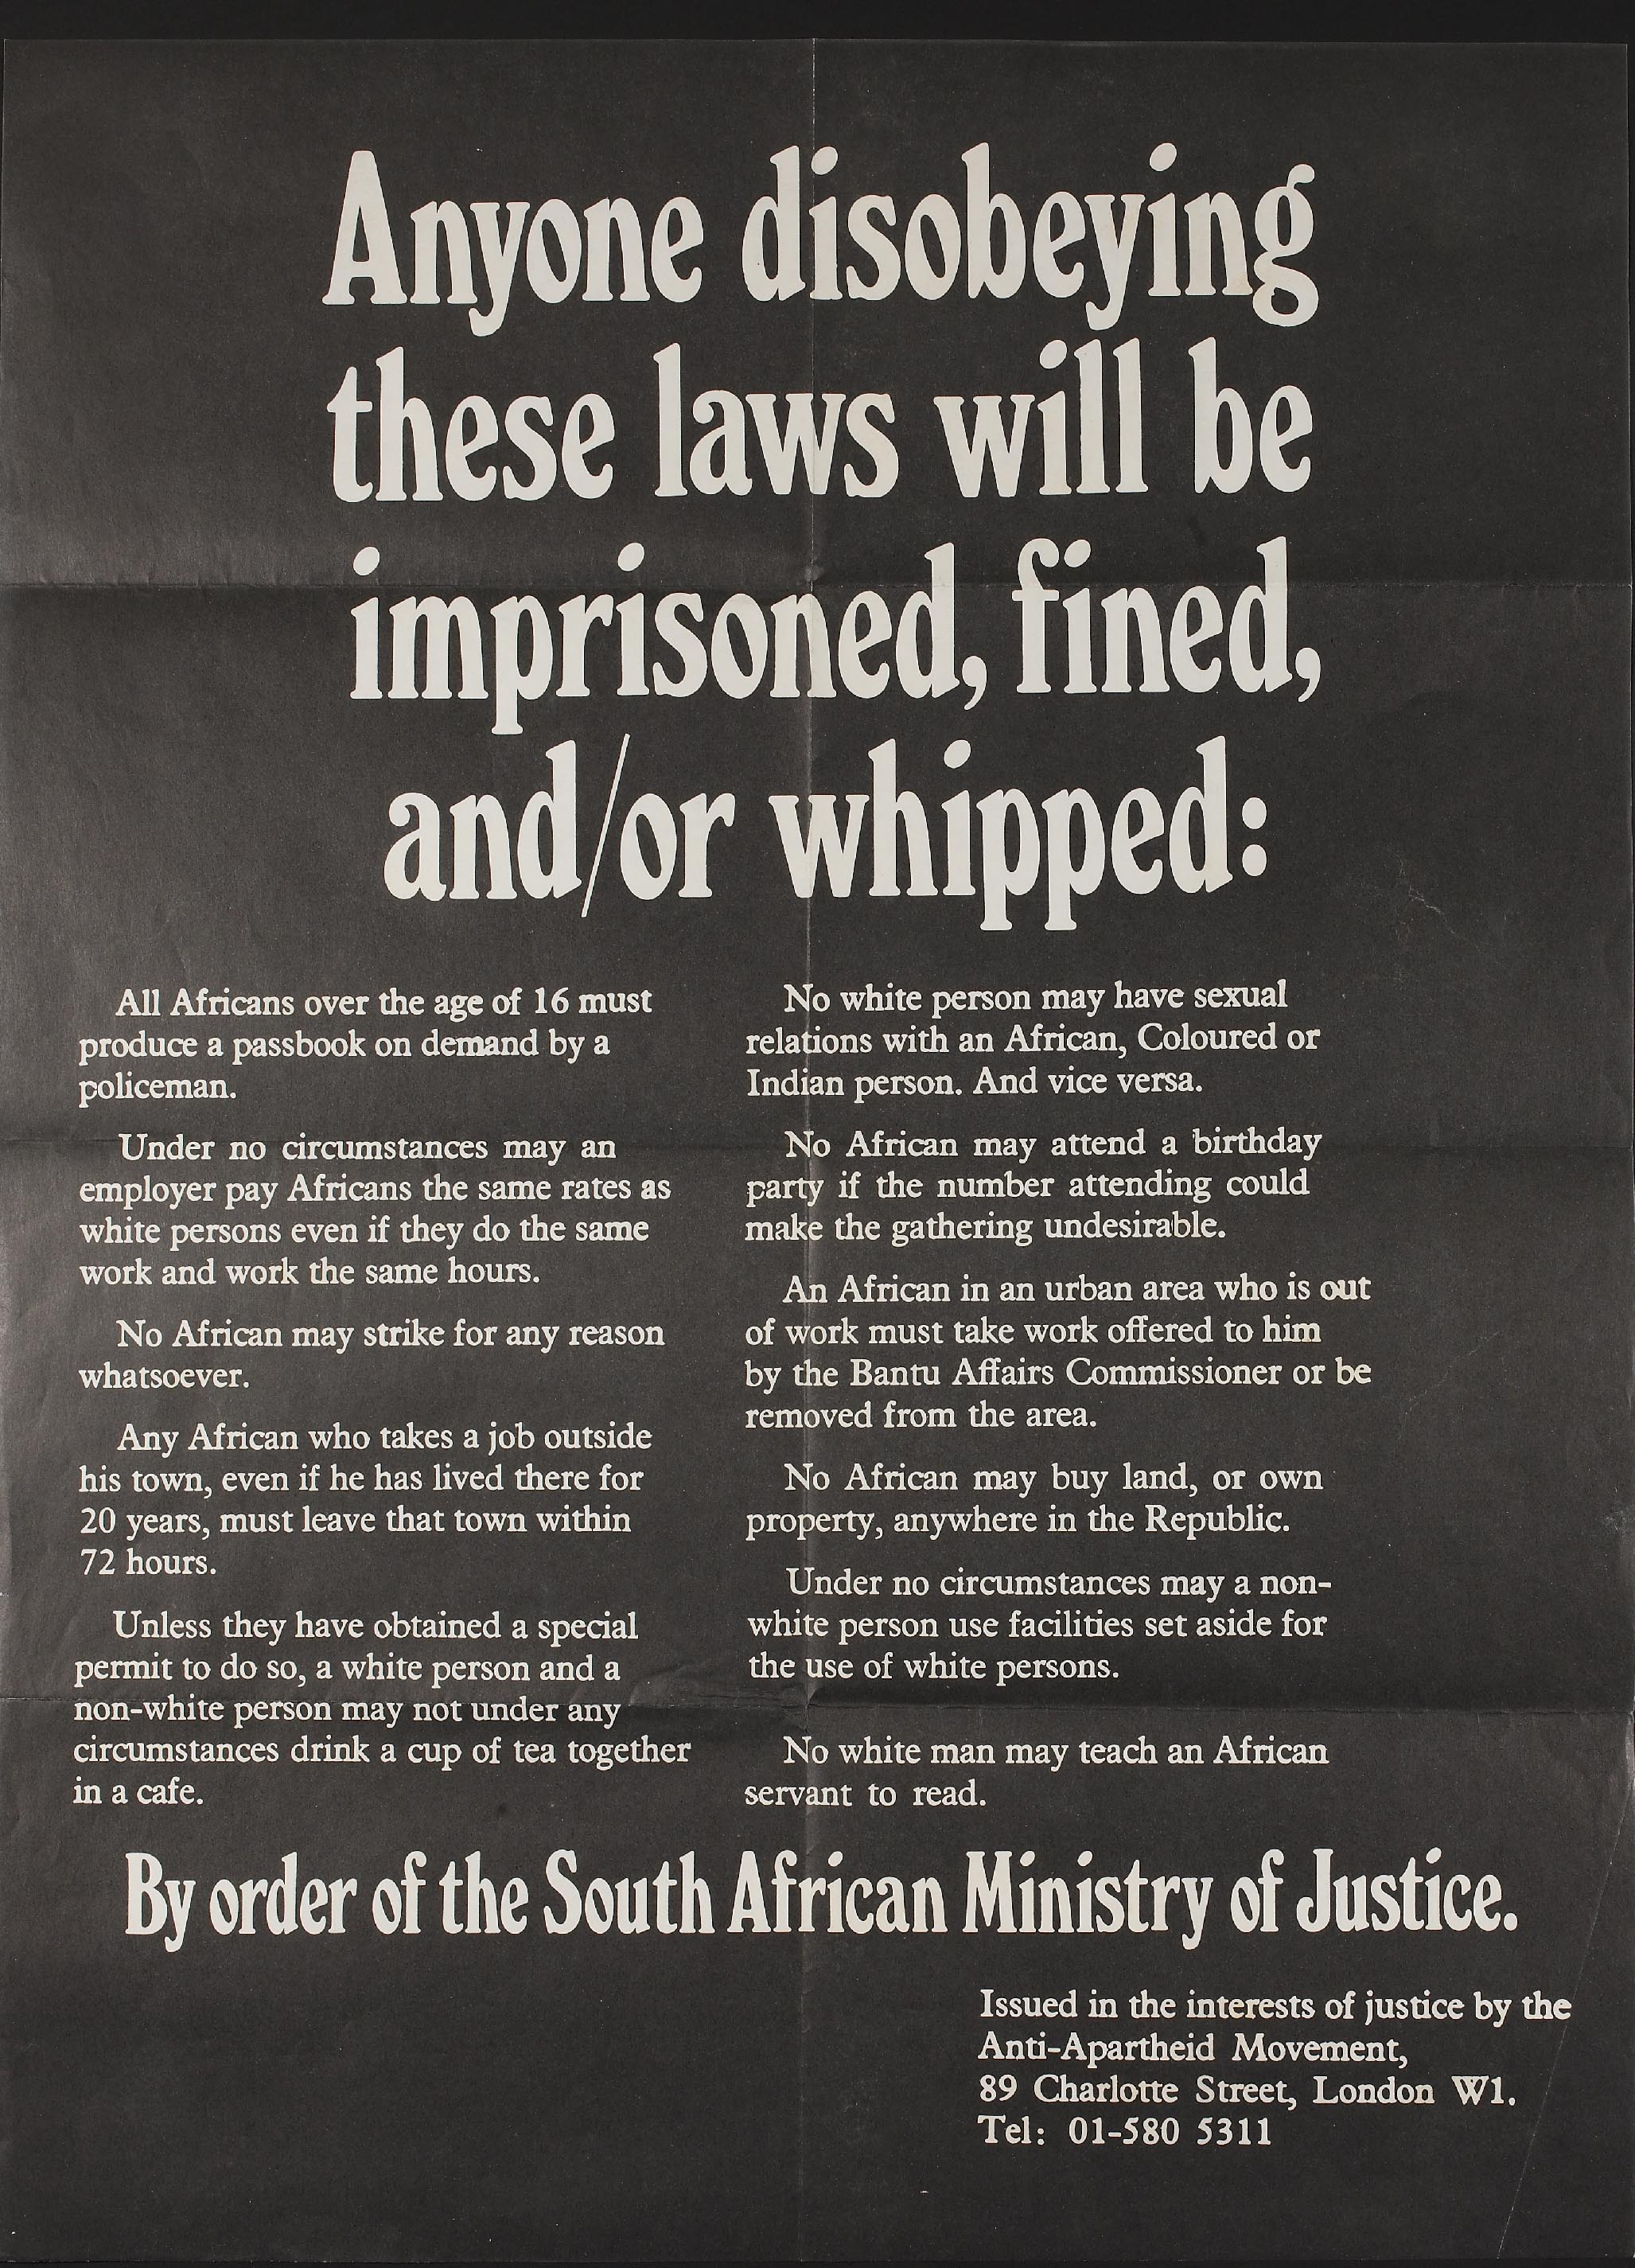 The south african legal system